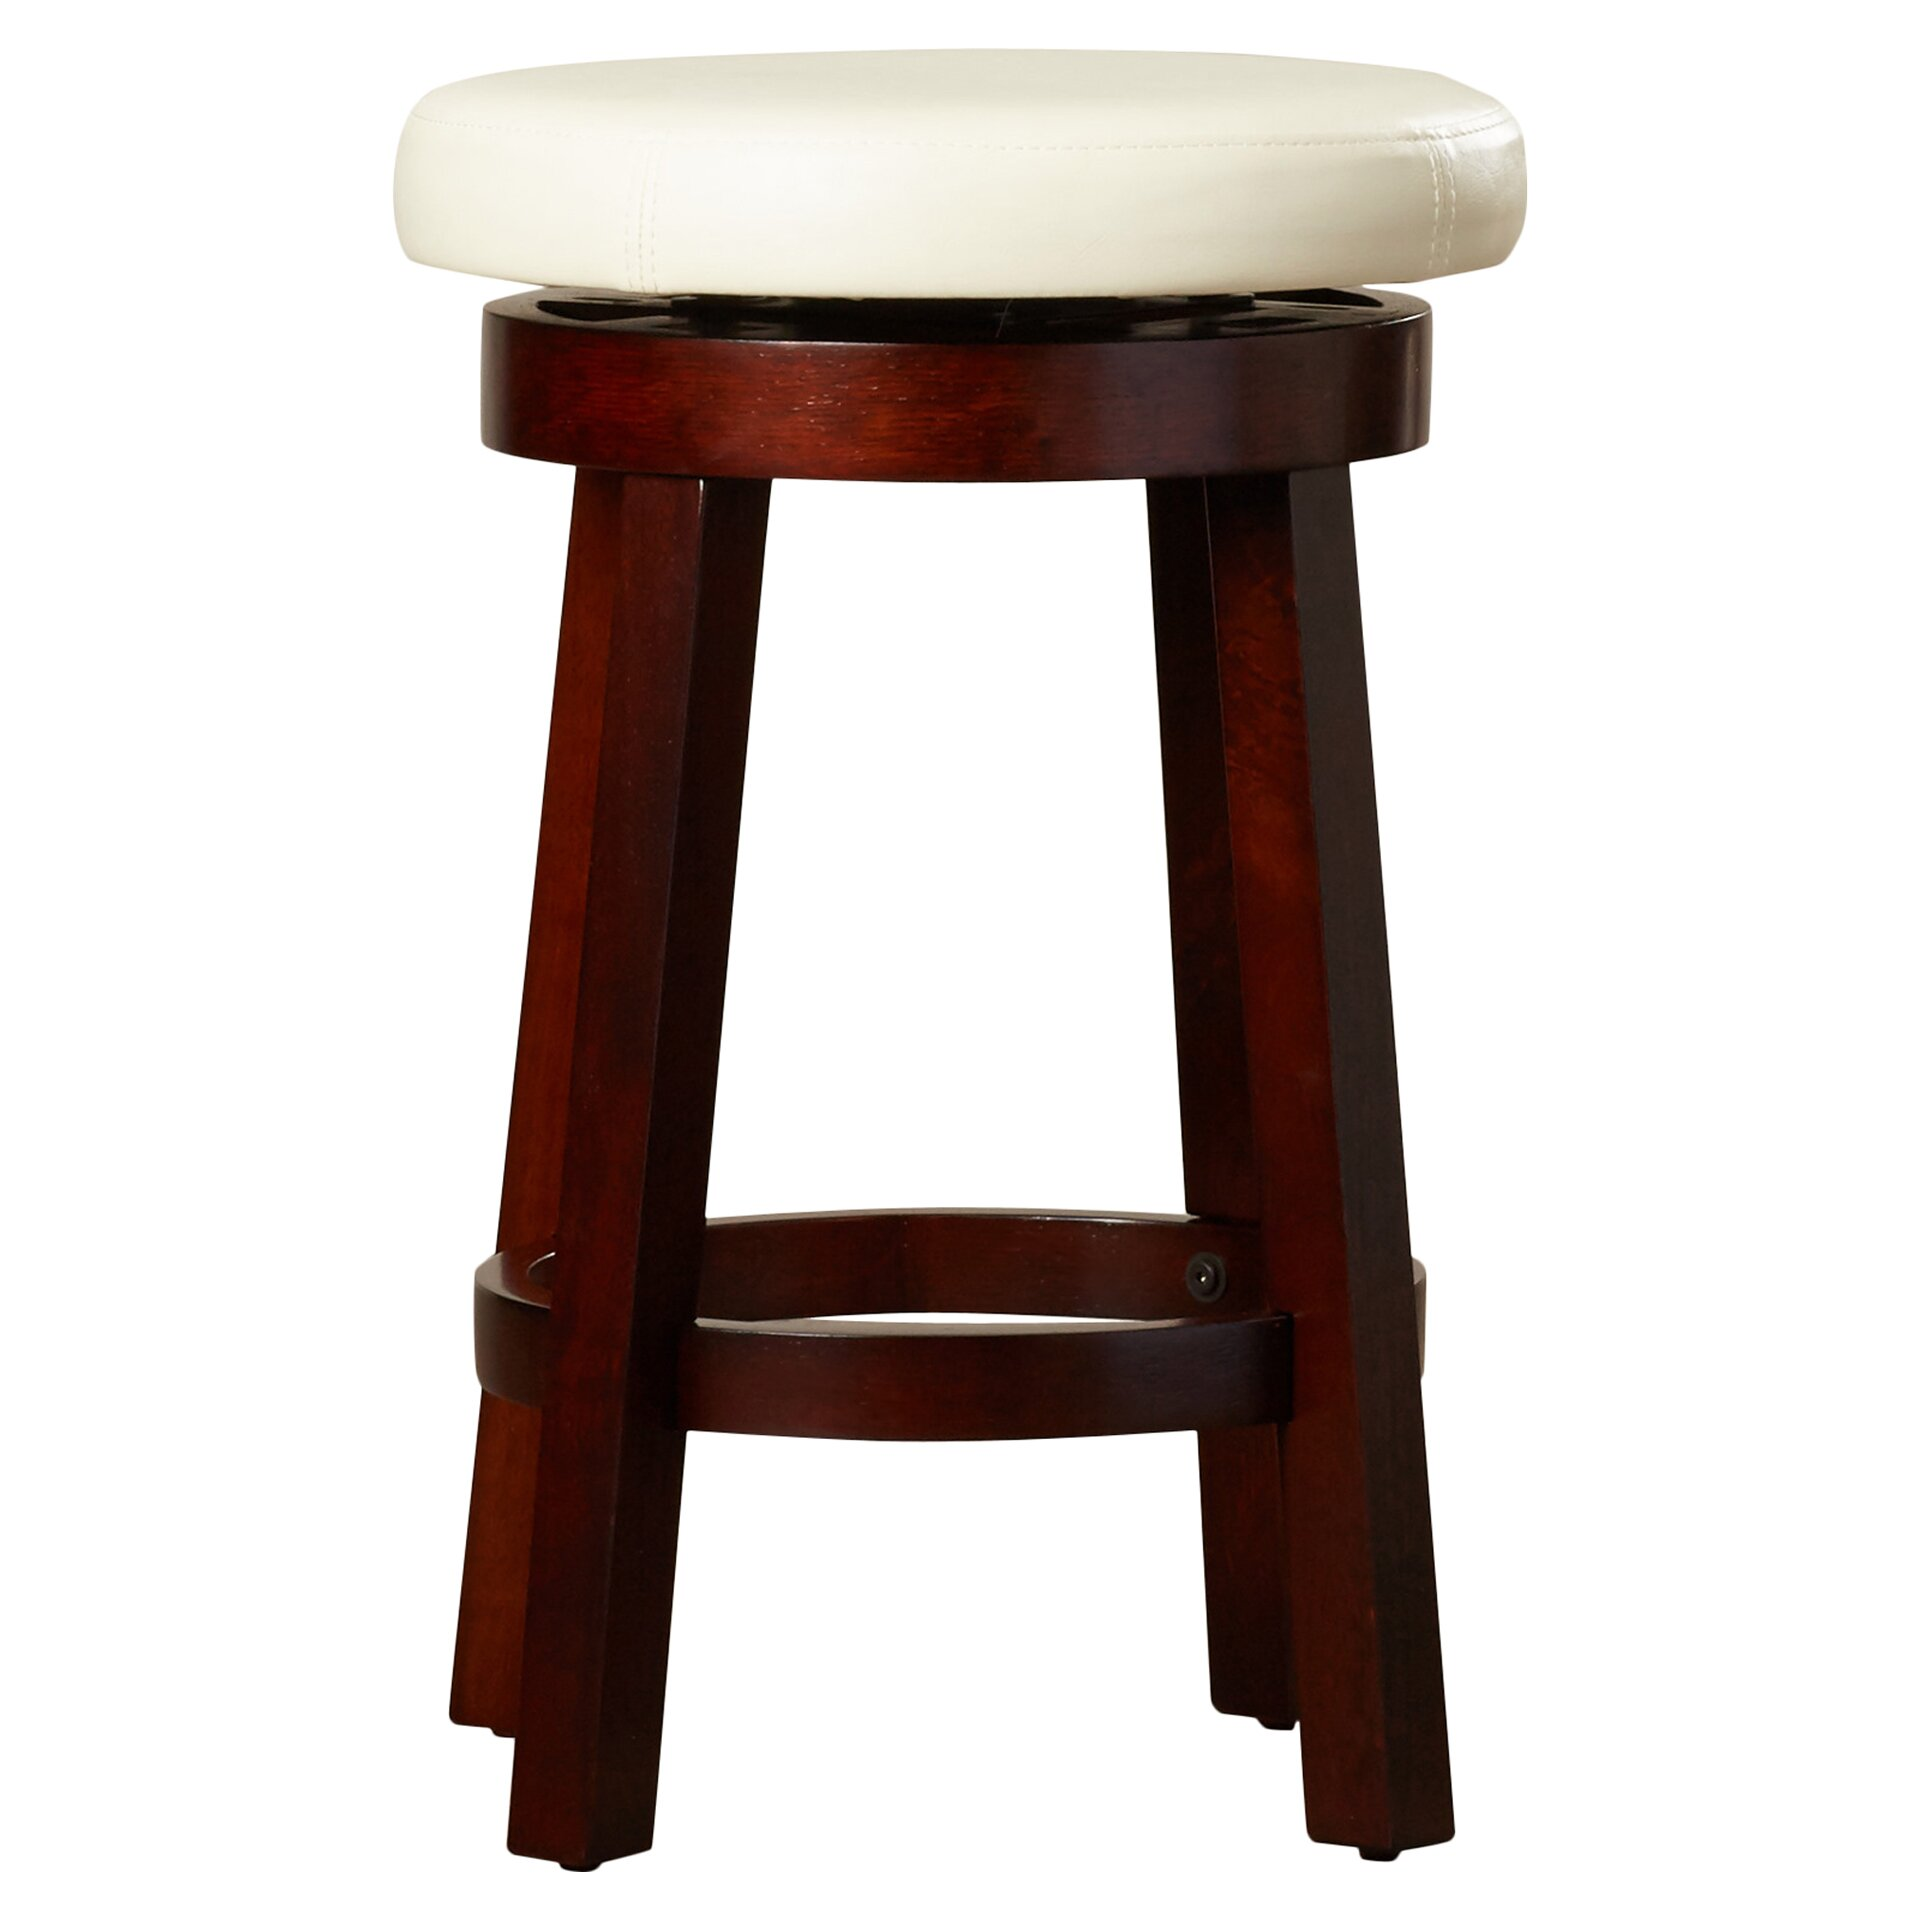 OSP Designs Metro 24quot Bar Stool with Cushion amp Reviews  : Antley2B2425222BBar2BStool2Bwith2BCushion from www.wayfair.com size 1920 x 1920 jpeg 209kB